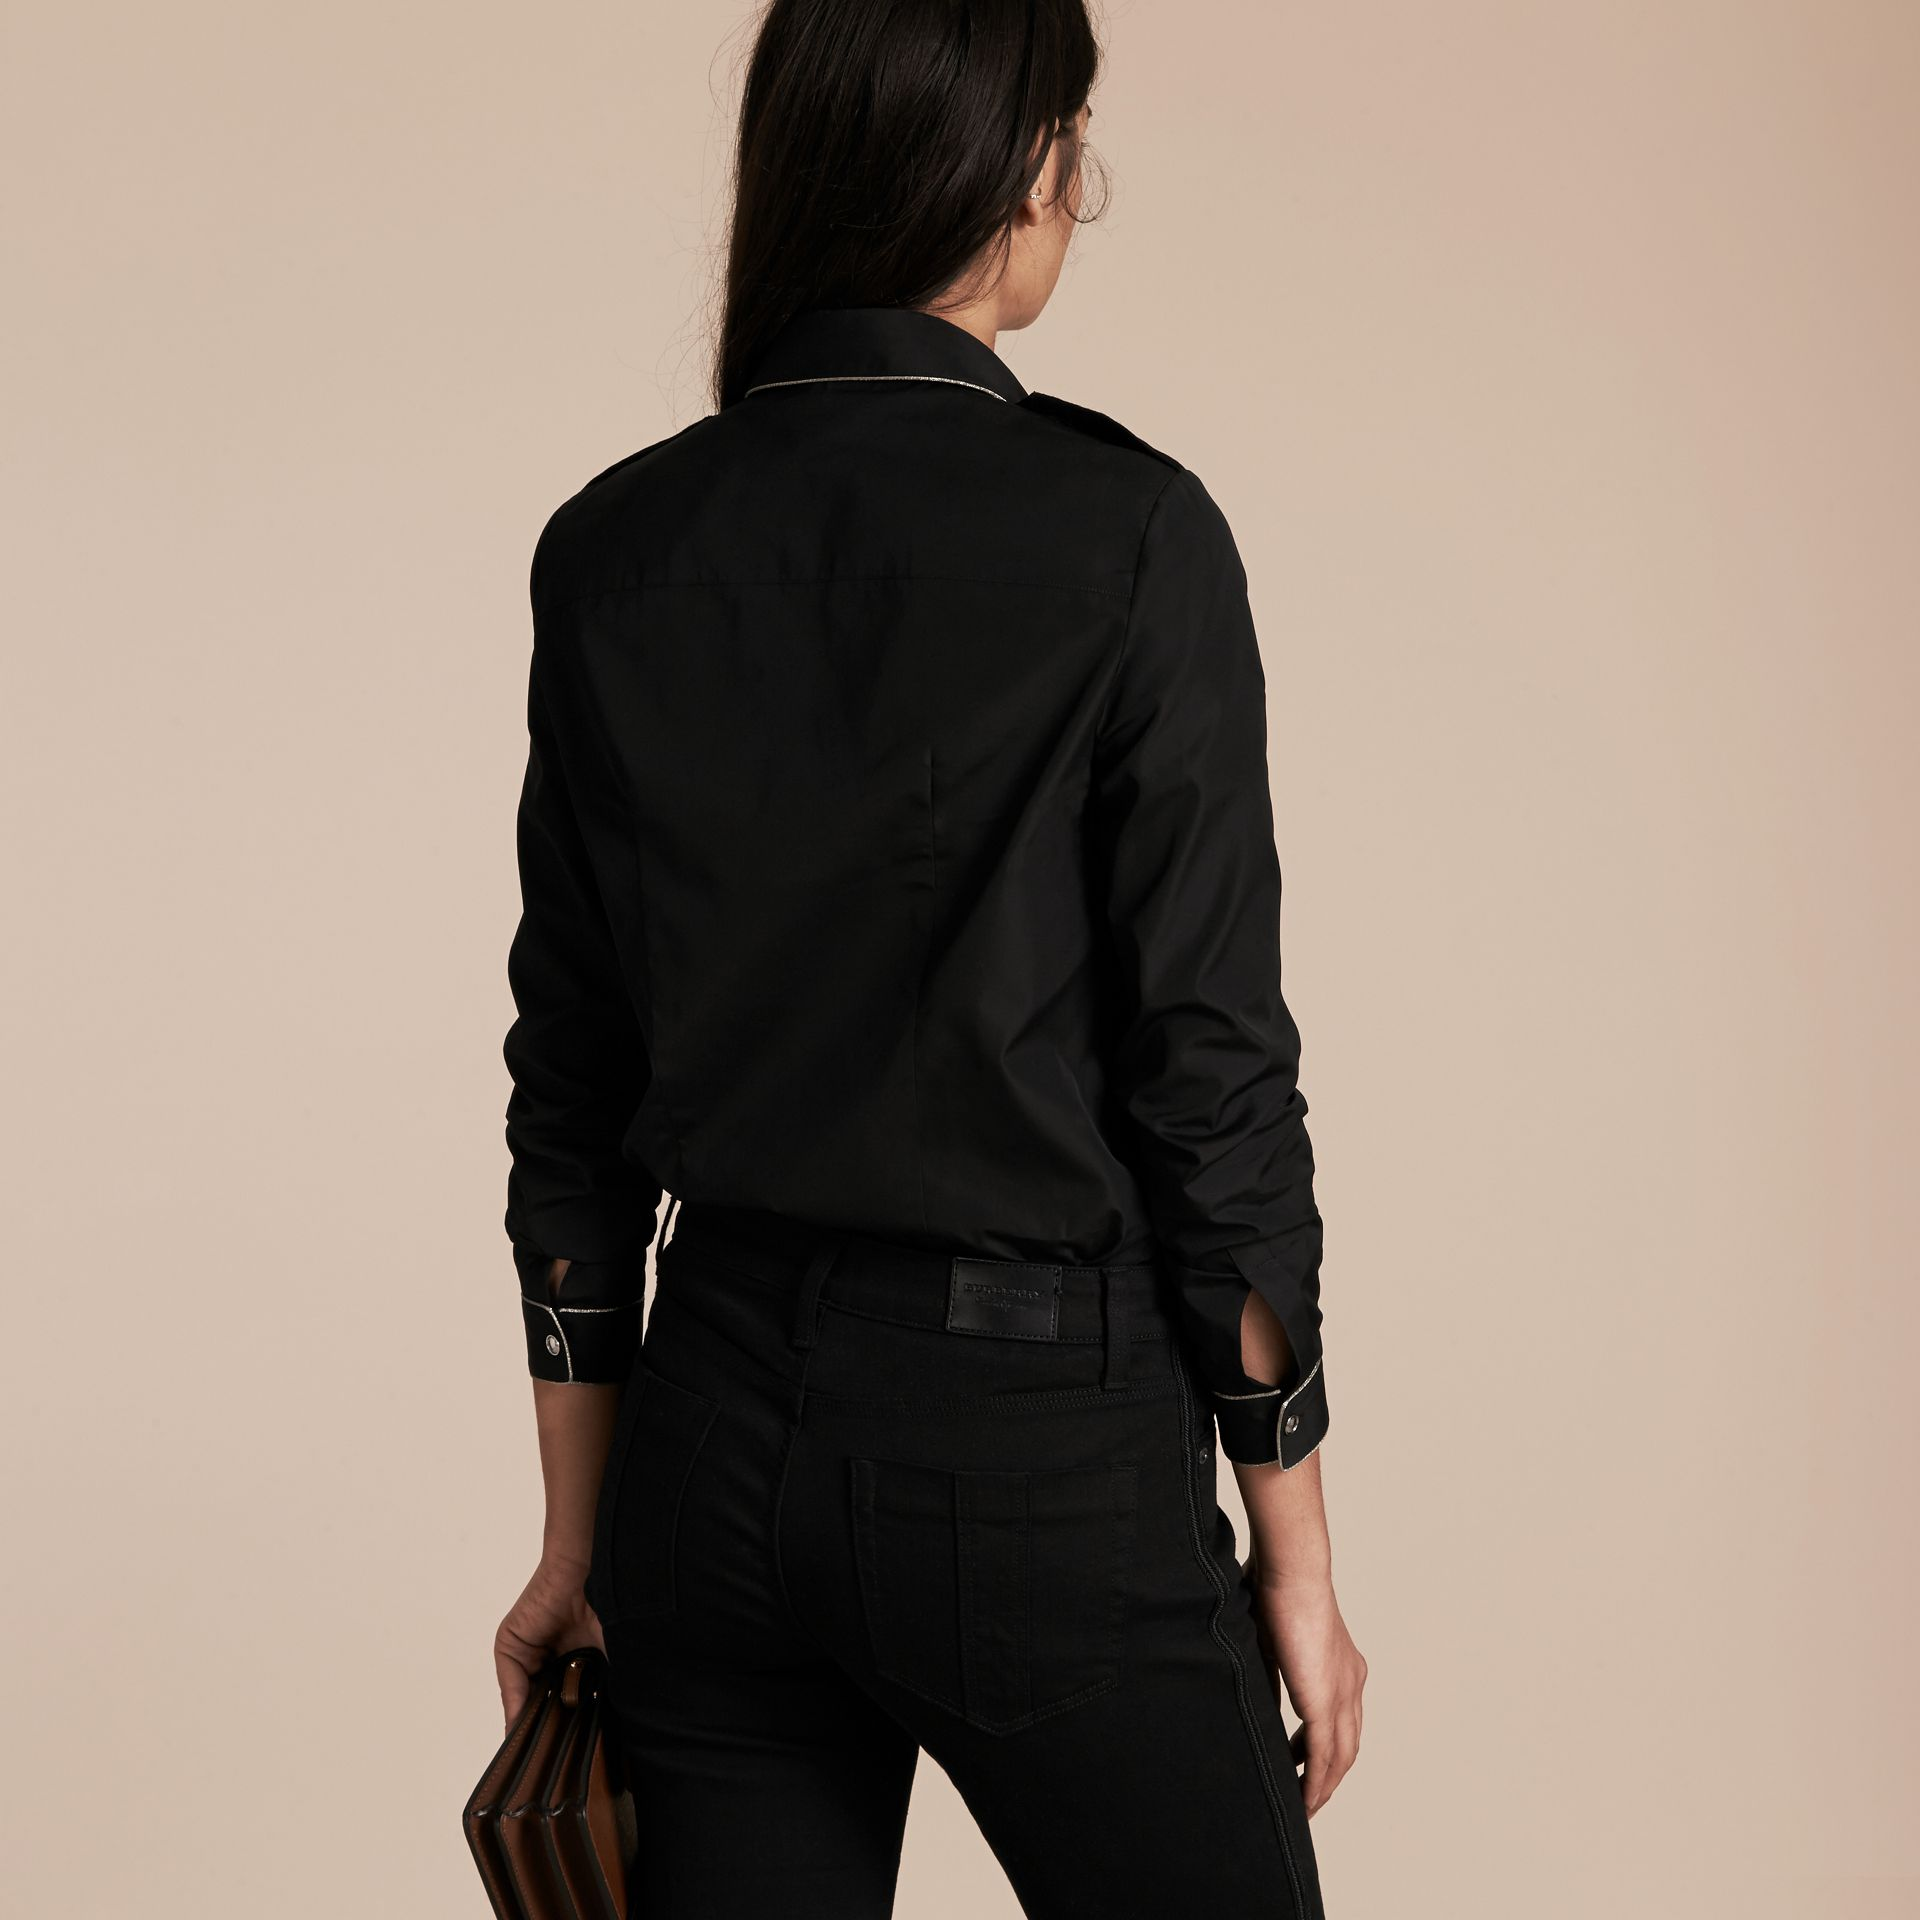 Black Piped Jacquard Cotton Shirt Black - gallery image 3